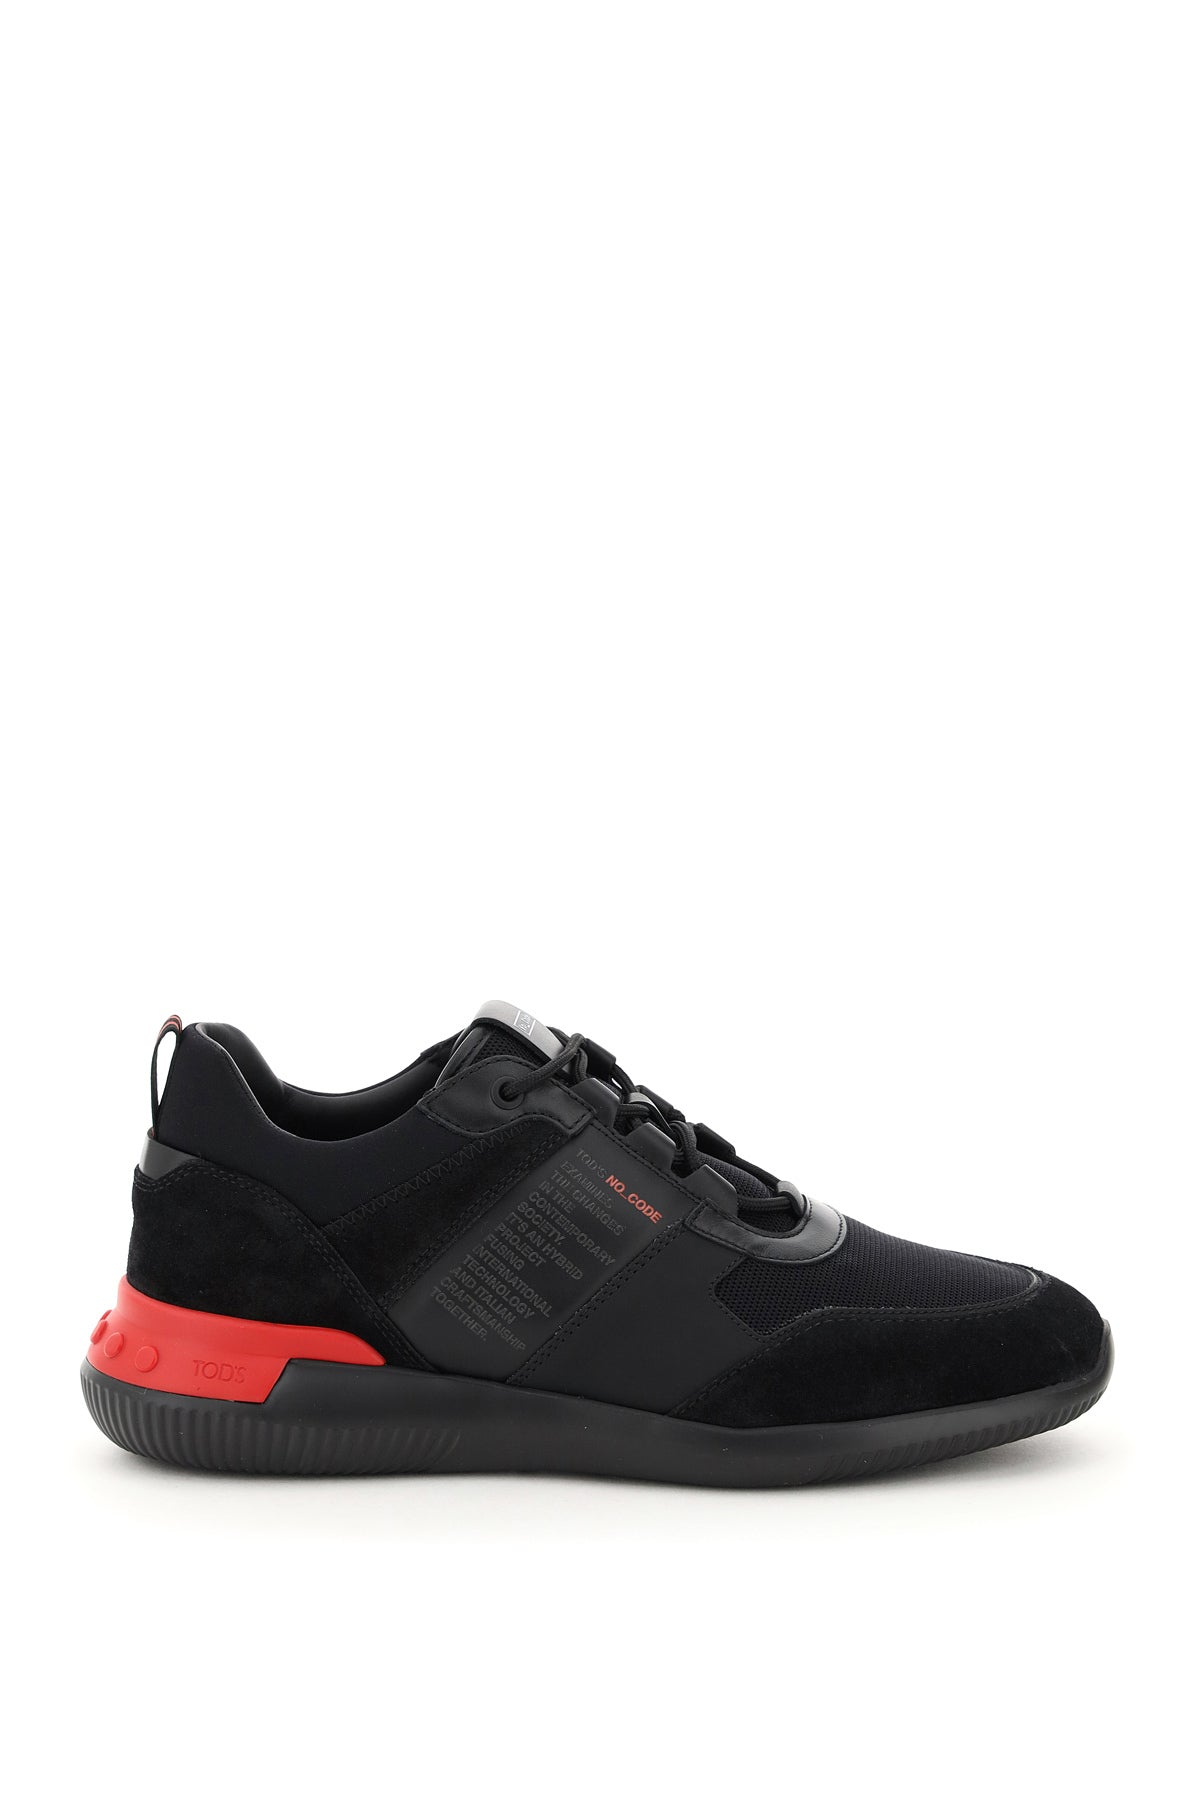 Tod's Sneakers TOD'S NO_CODE SNEAKERS